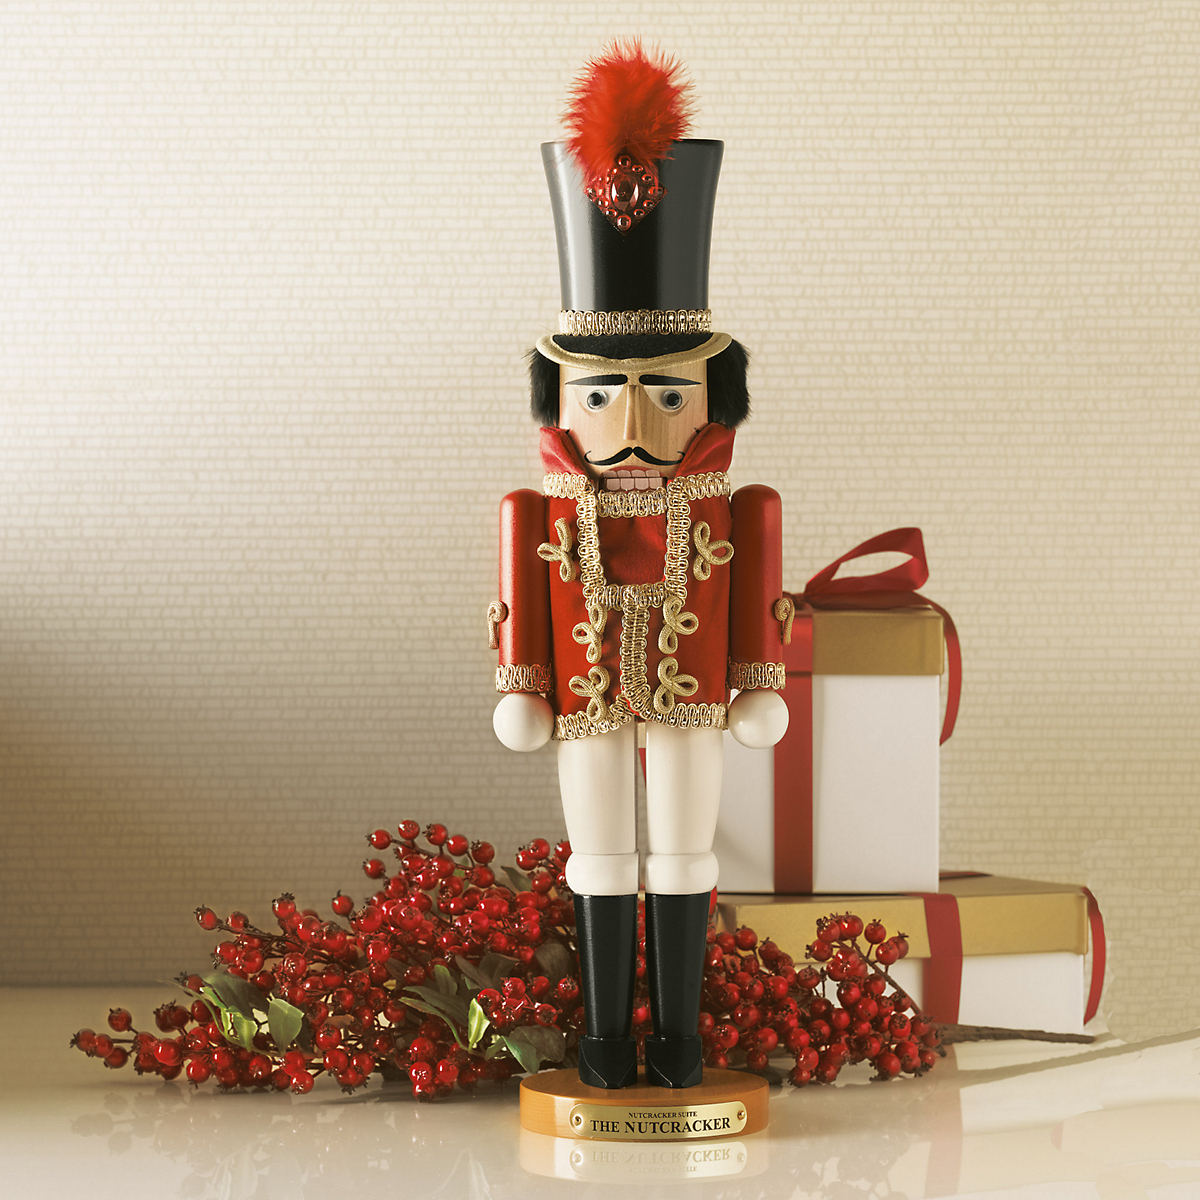 Steinbach The Nutcracker